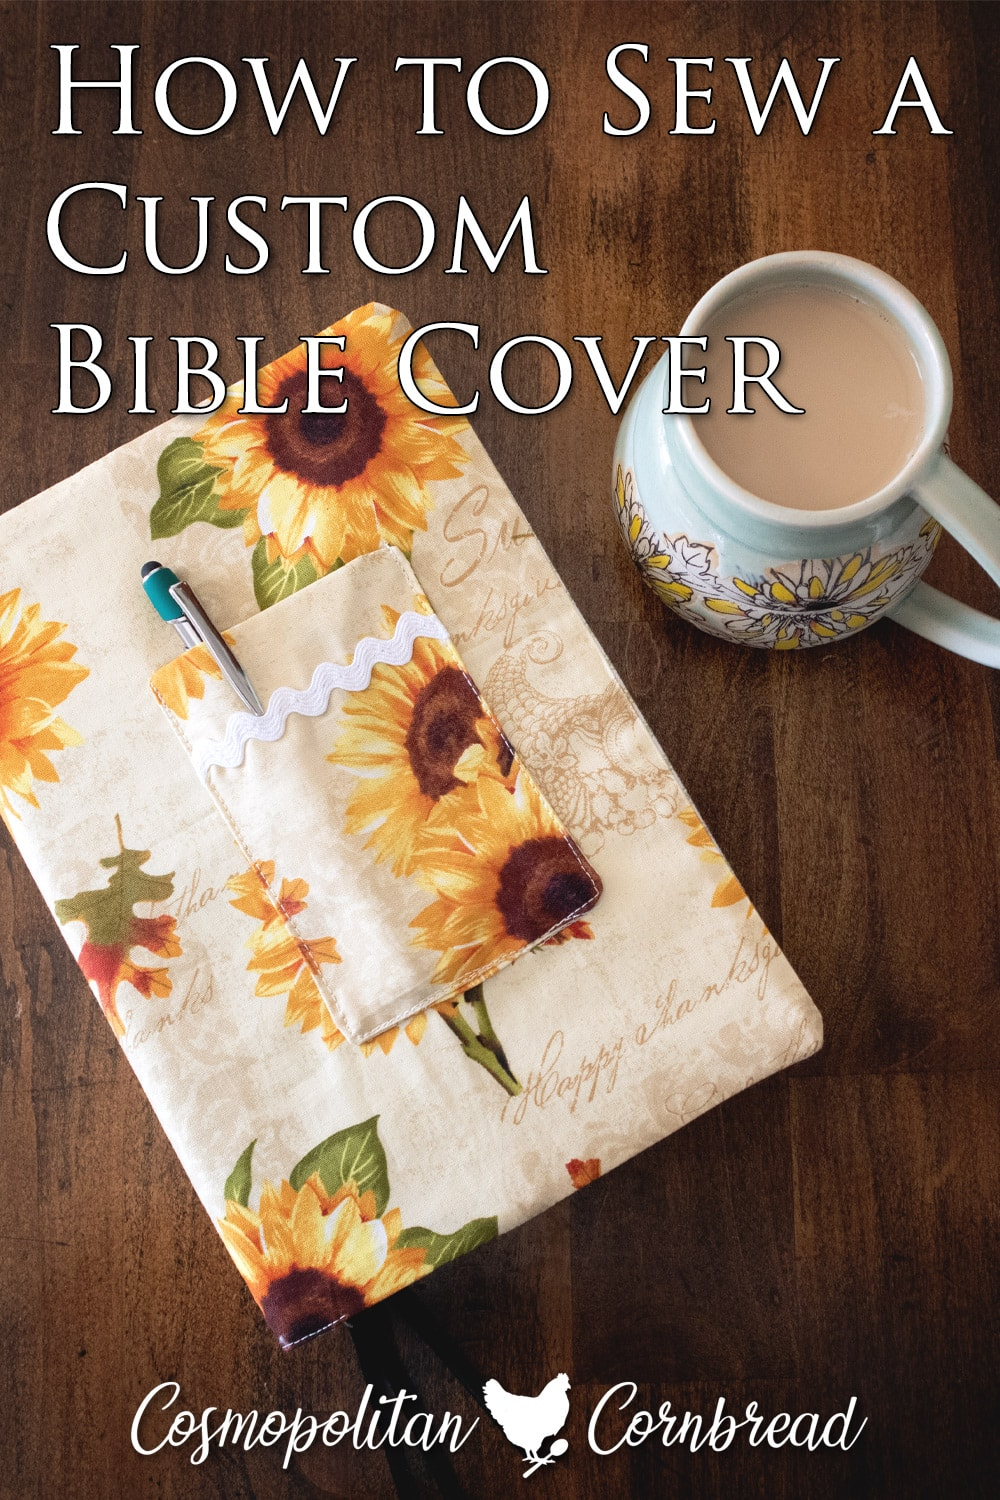 How to Make a Custom Bible Cover | Tutorial Article and Video from Cosmopolitan Cornbread